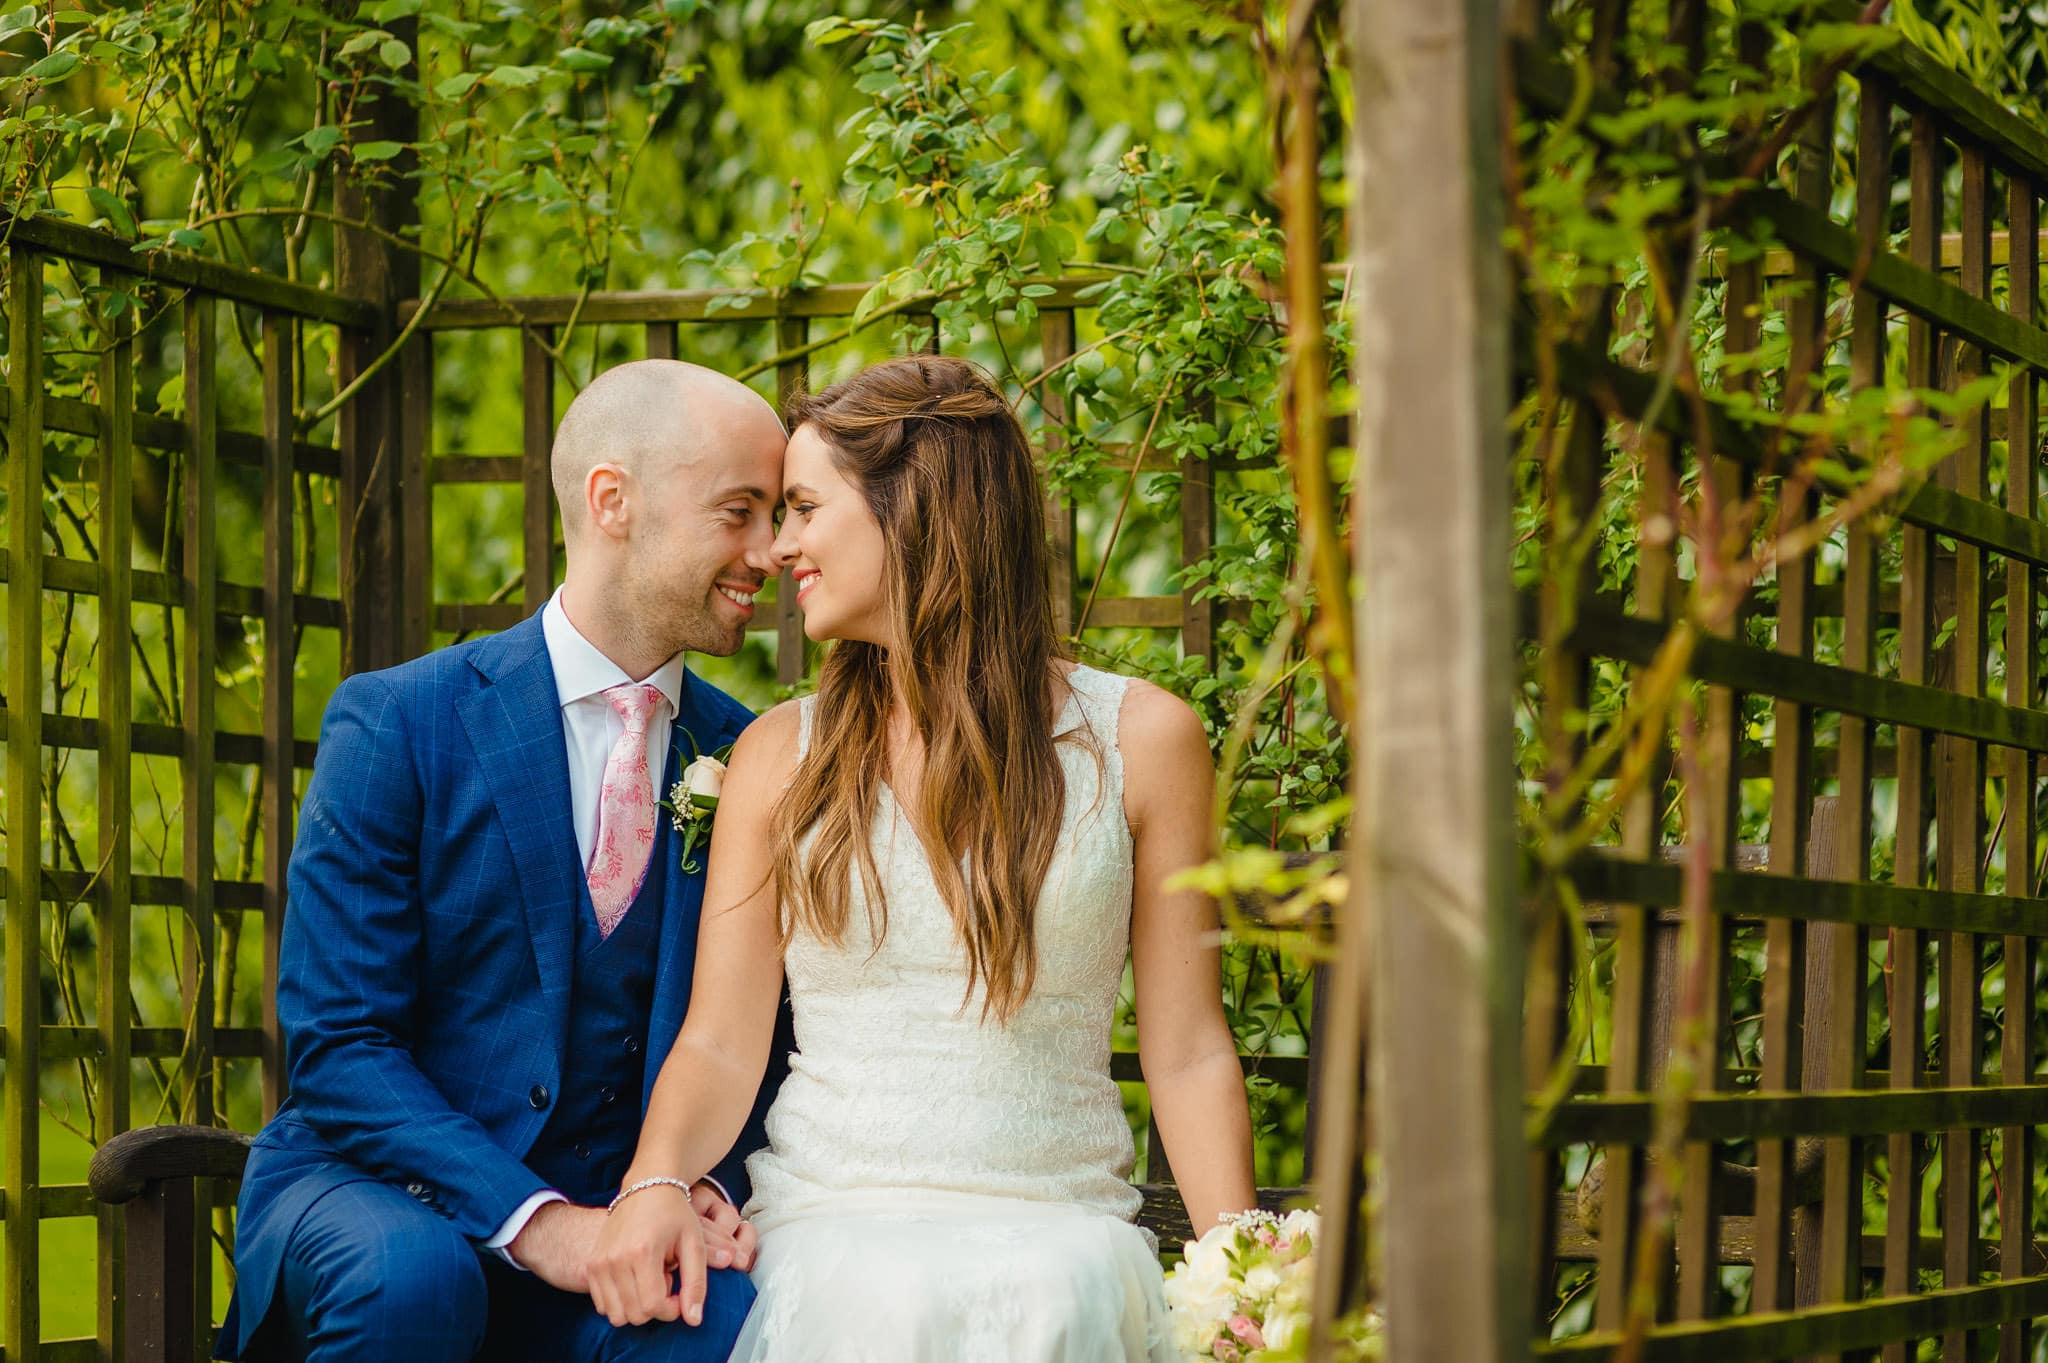 Wedding at Redhouse Barn in Stoke Prior, Worcestershire 178